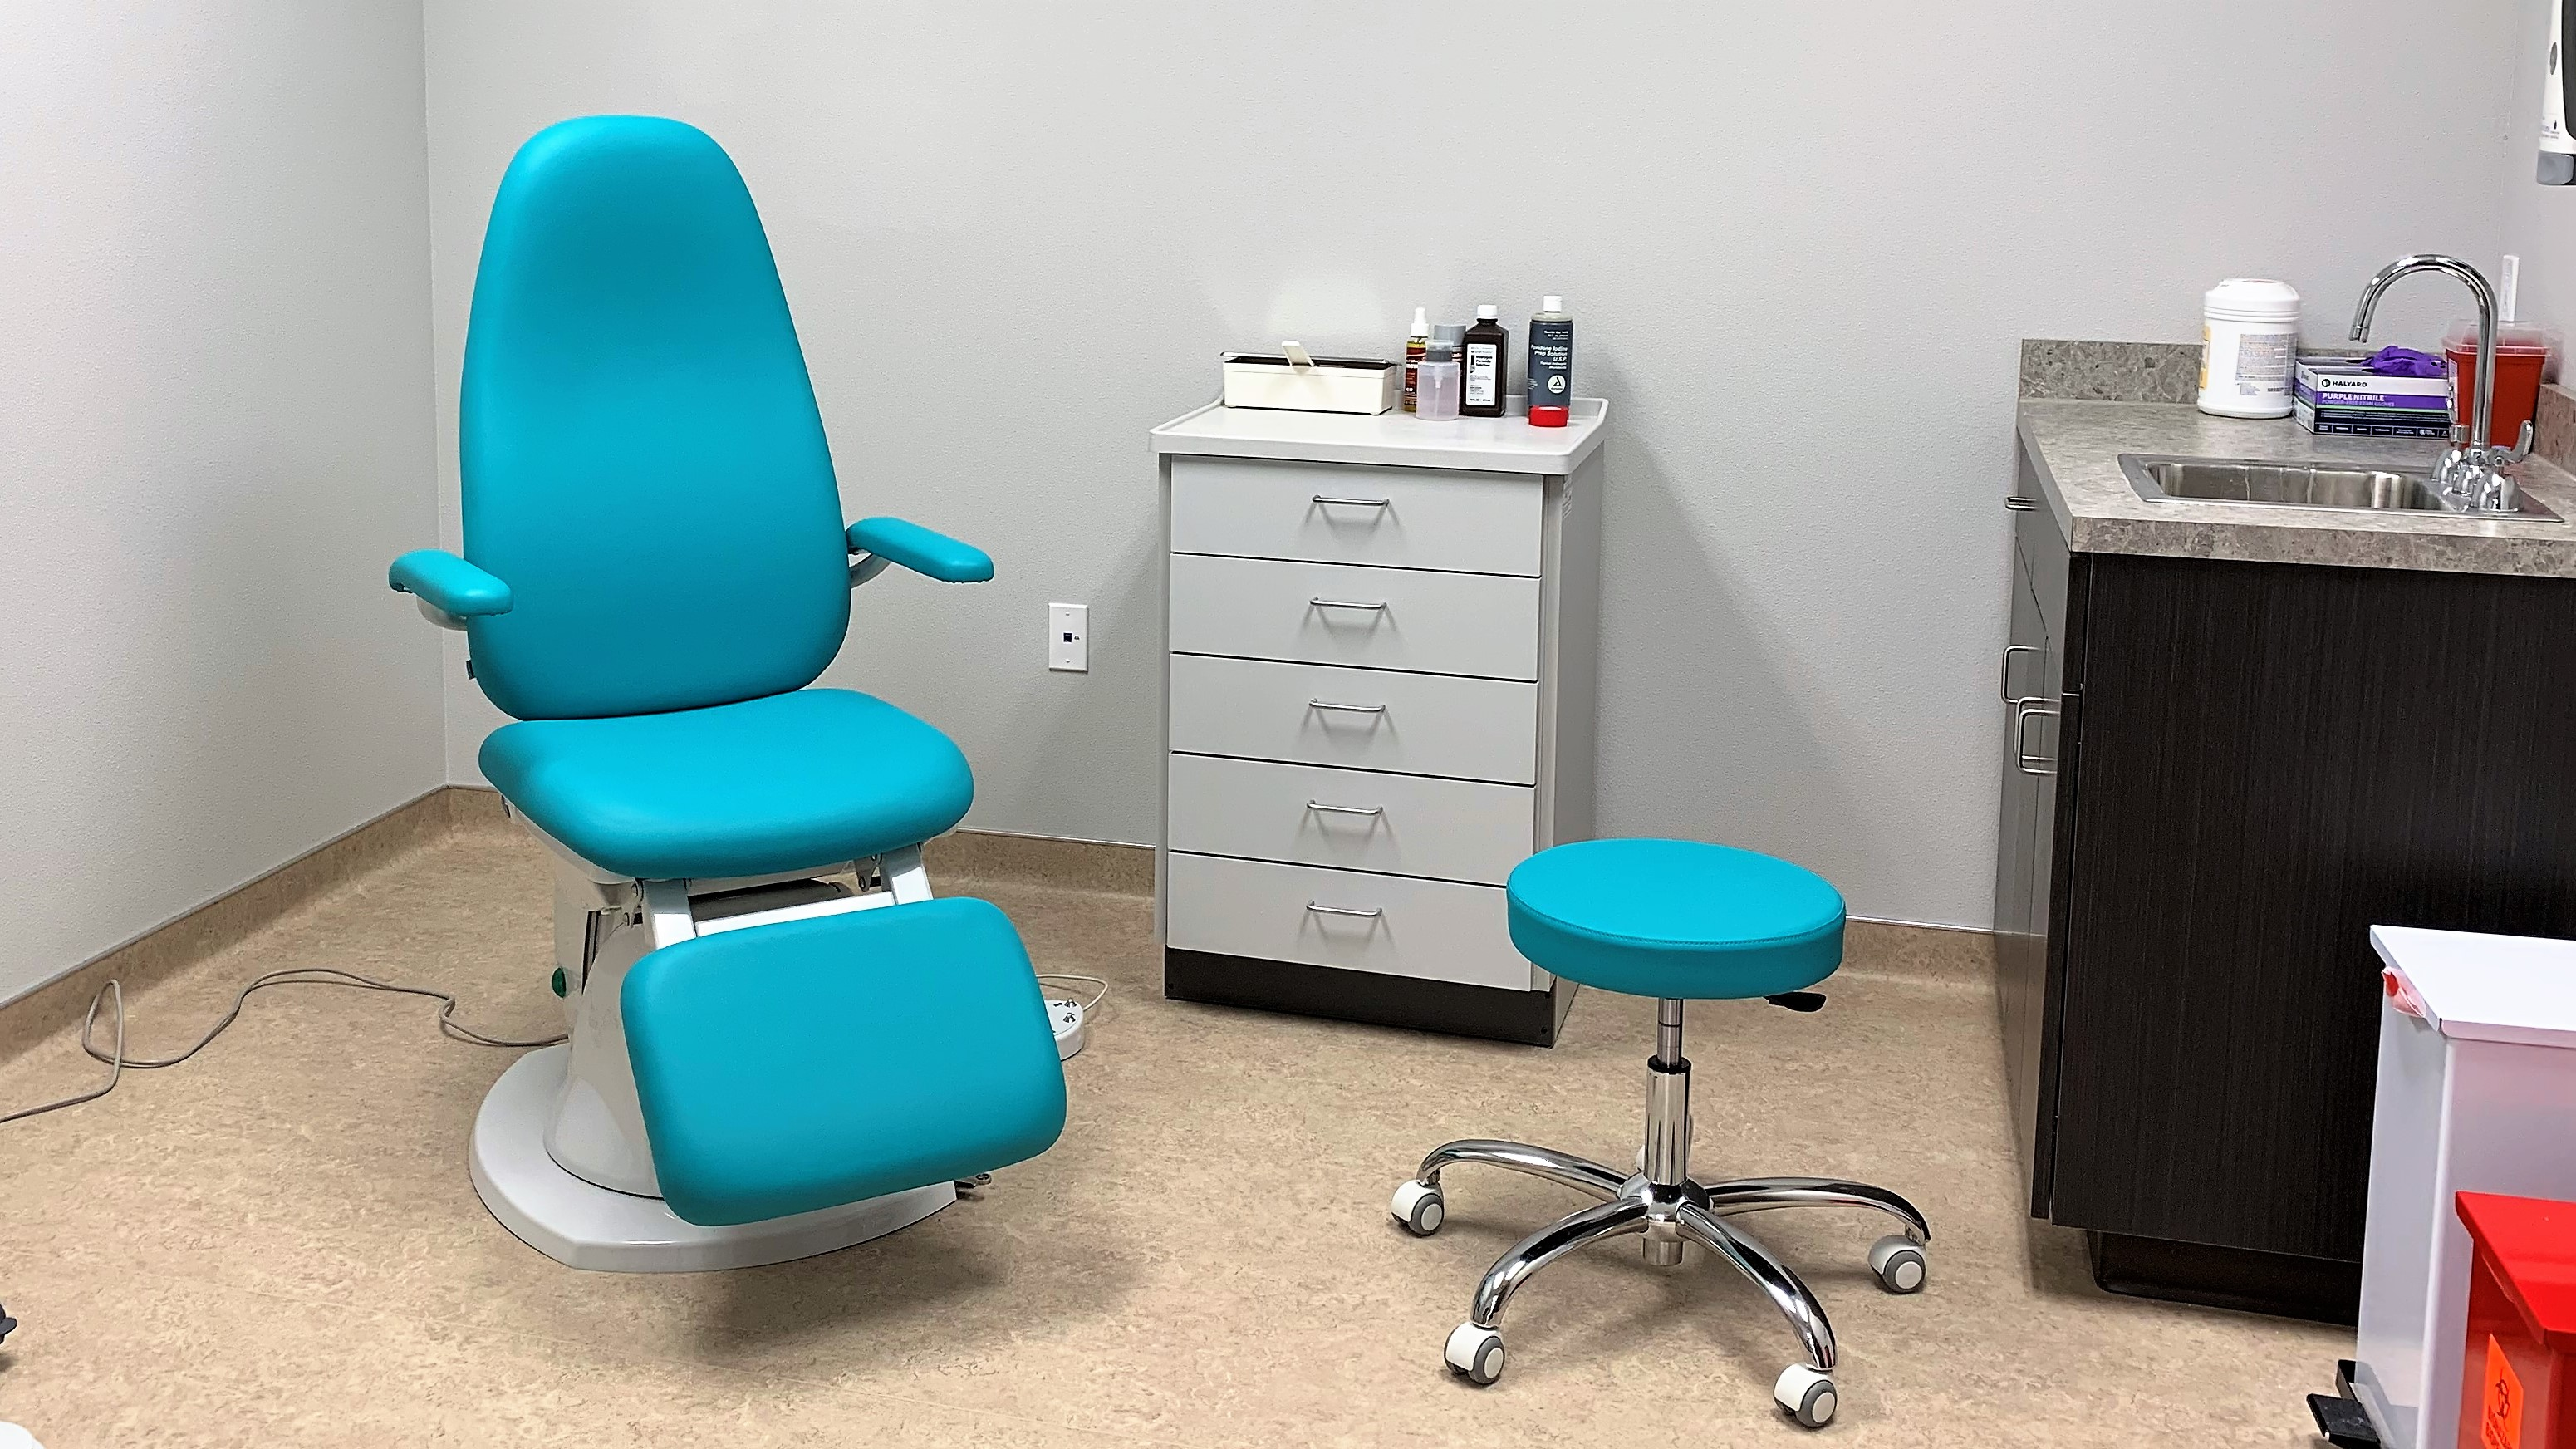 Exam Room 1 at Shoal Creek Foot & Ankle Center